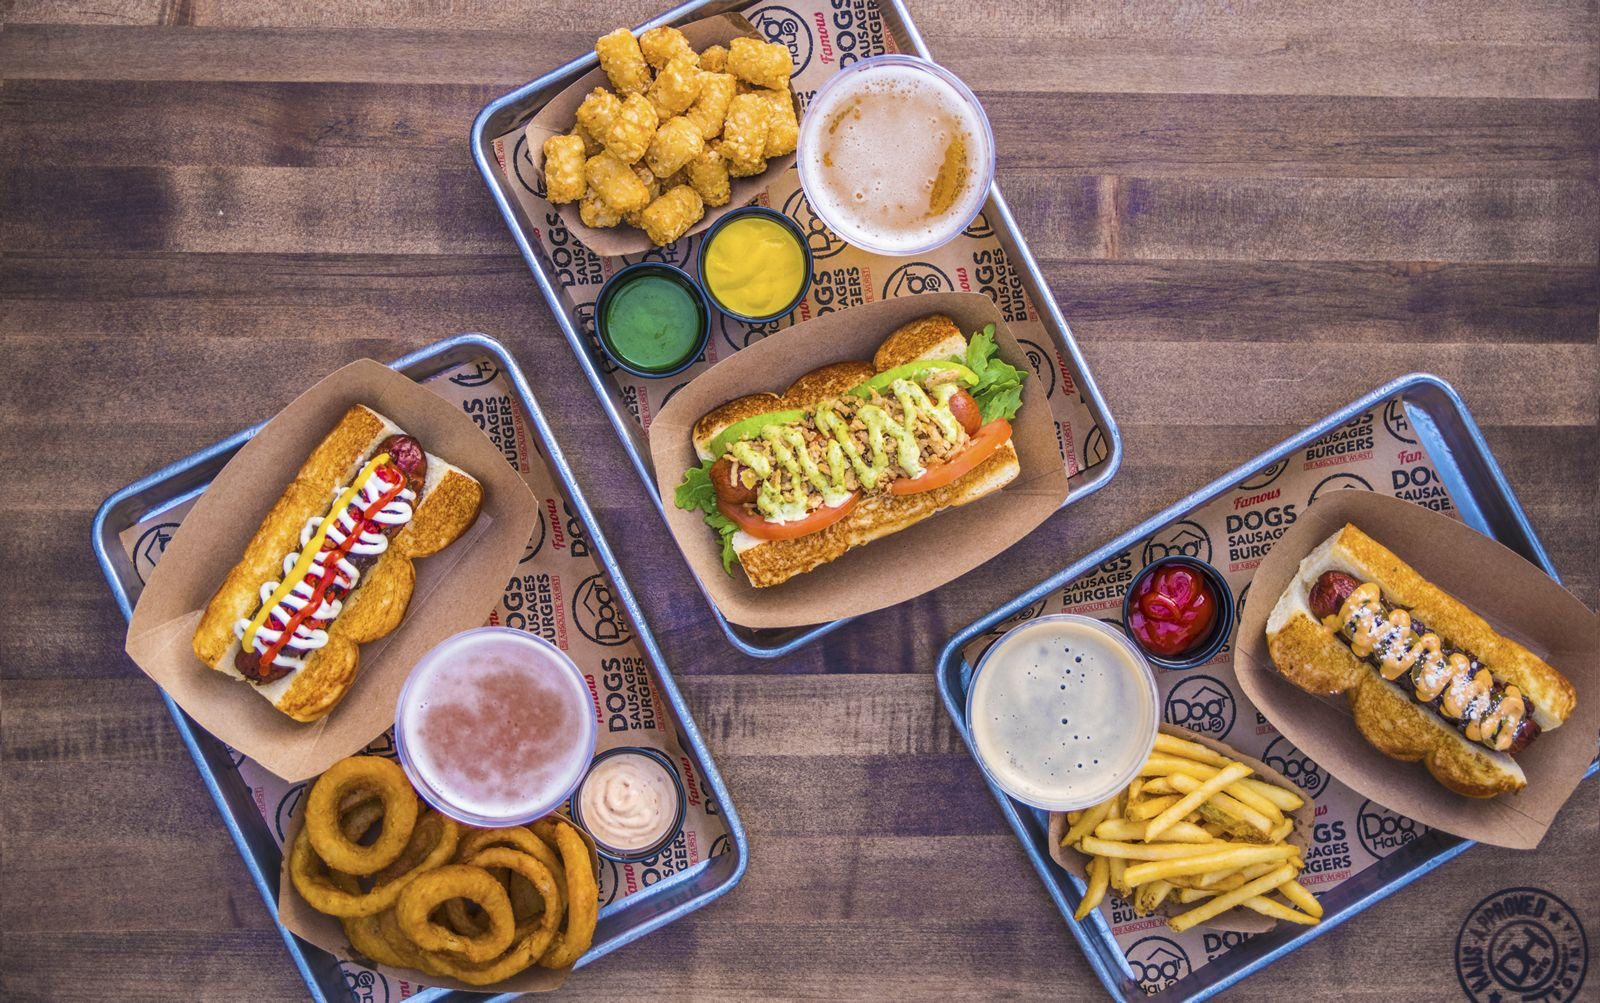 Dog Haus Executes Franchise Agreement to Bring The Absolute Würst to Louisville and Southern Indiana